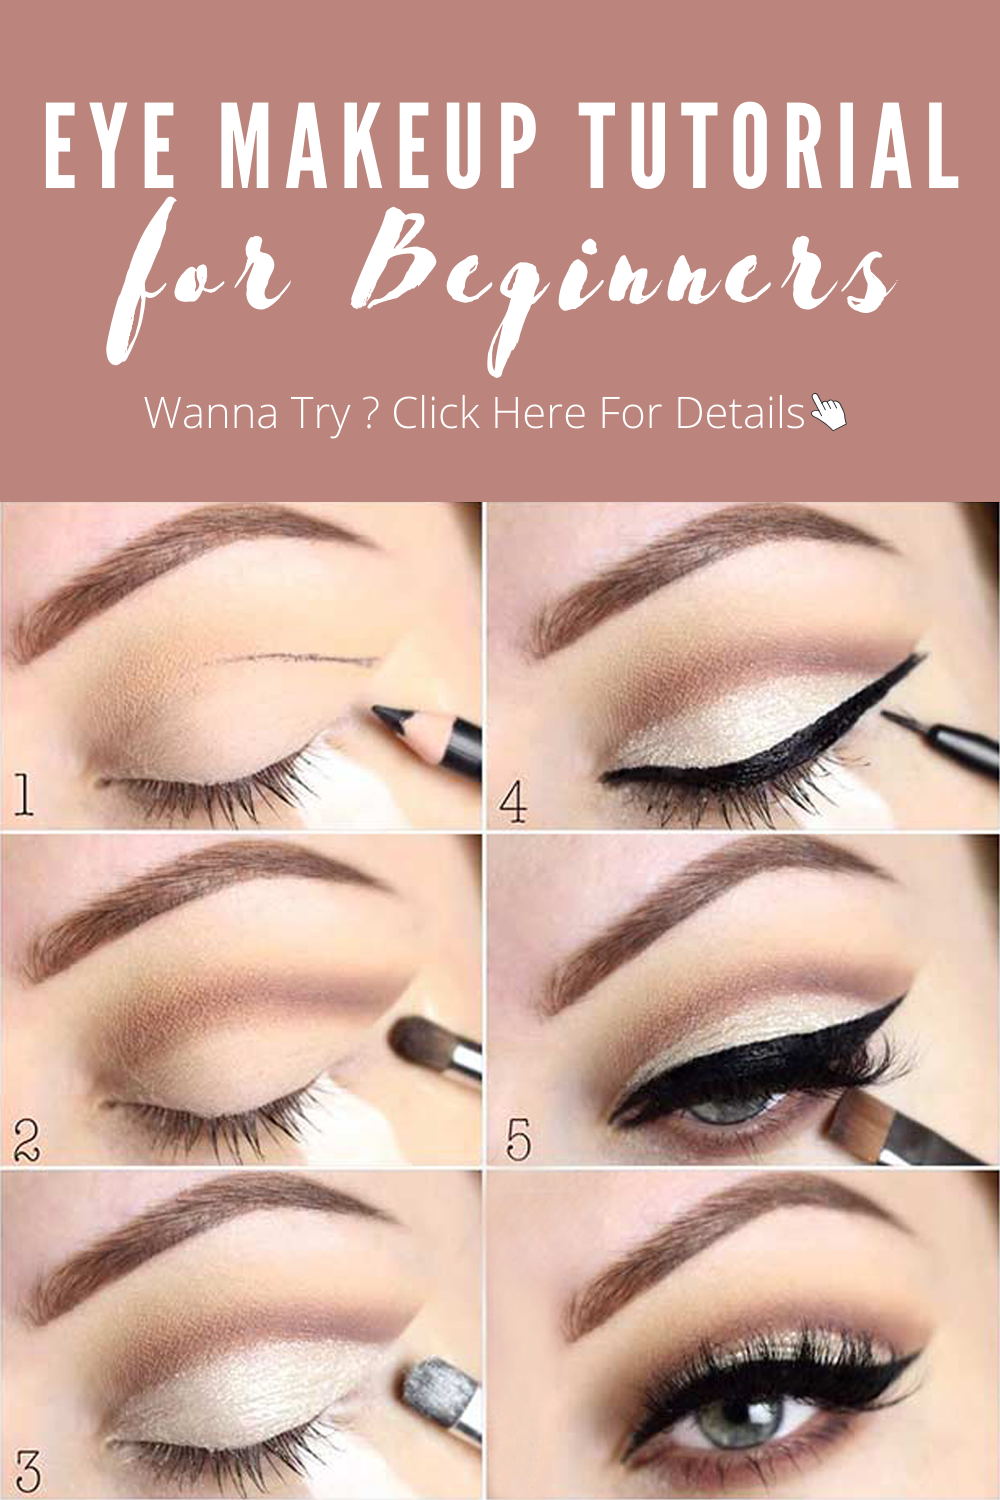 Eye Makeup Tutorial for Beginners: Makeup Like a Pro  Eye makeup